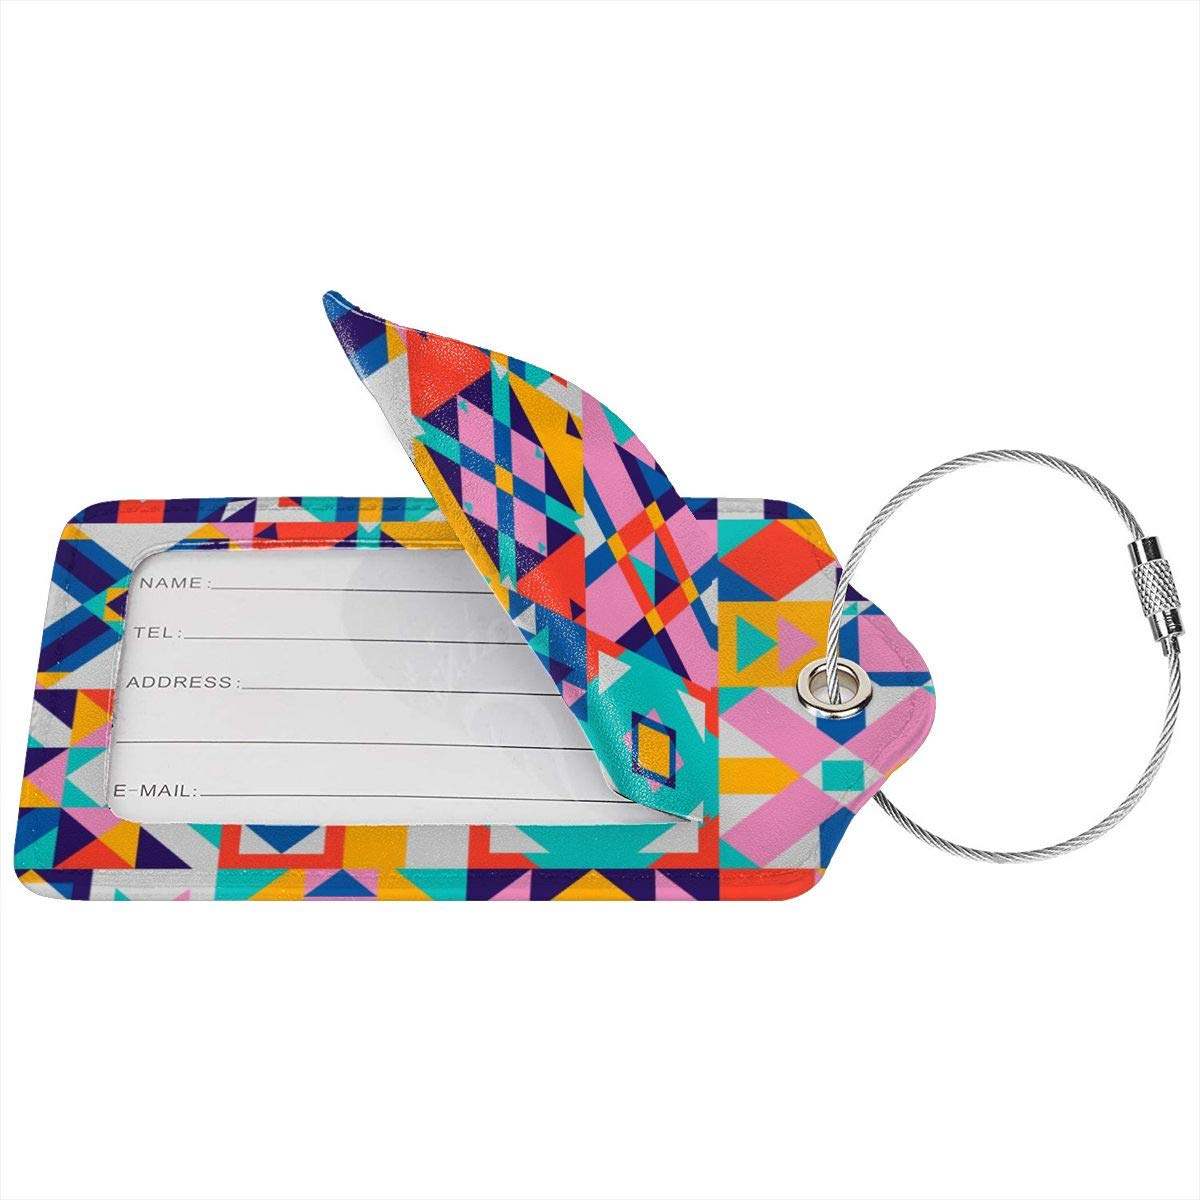 Lucaeat Abstract Texture Luggage Tag PU Leather Bag Tag Travel Suitcases ID